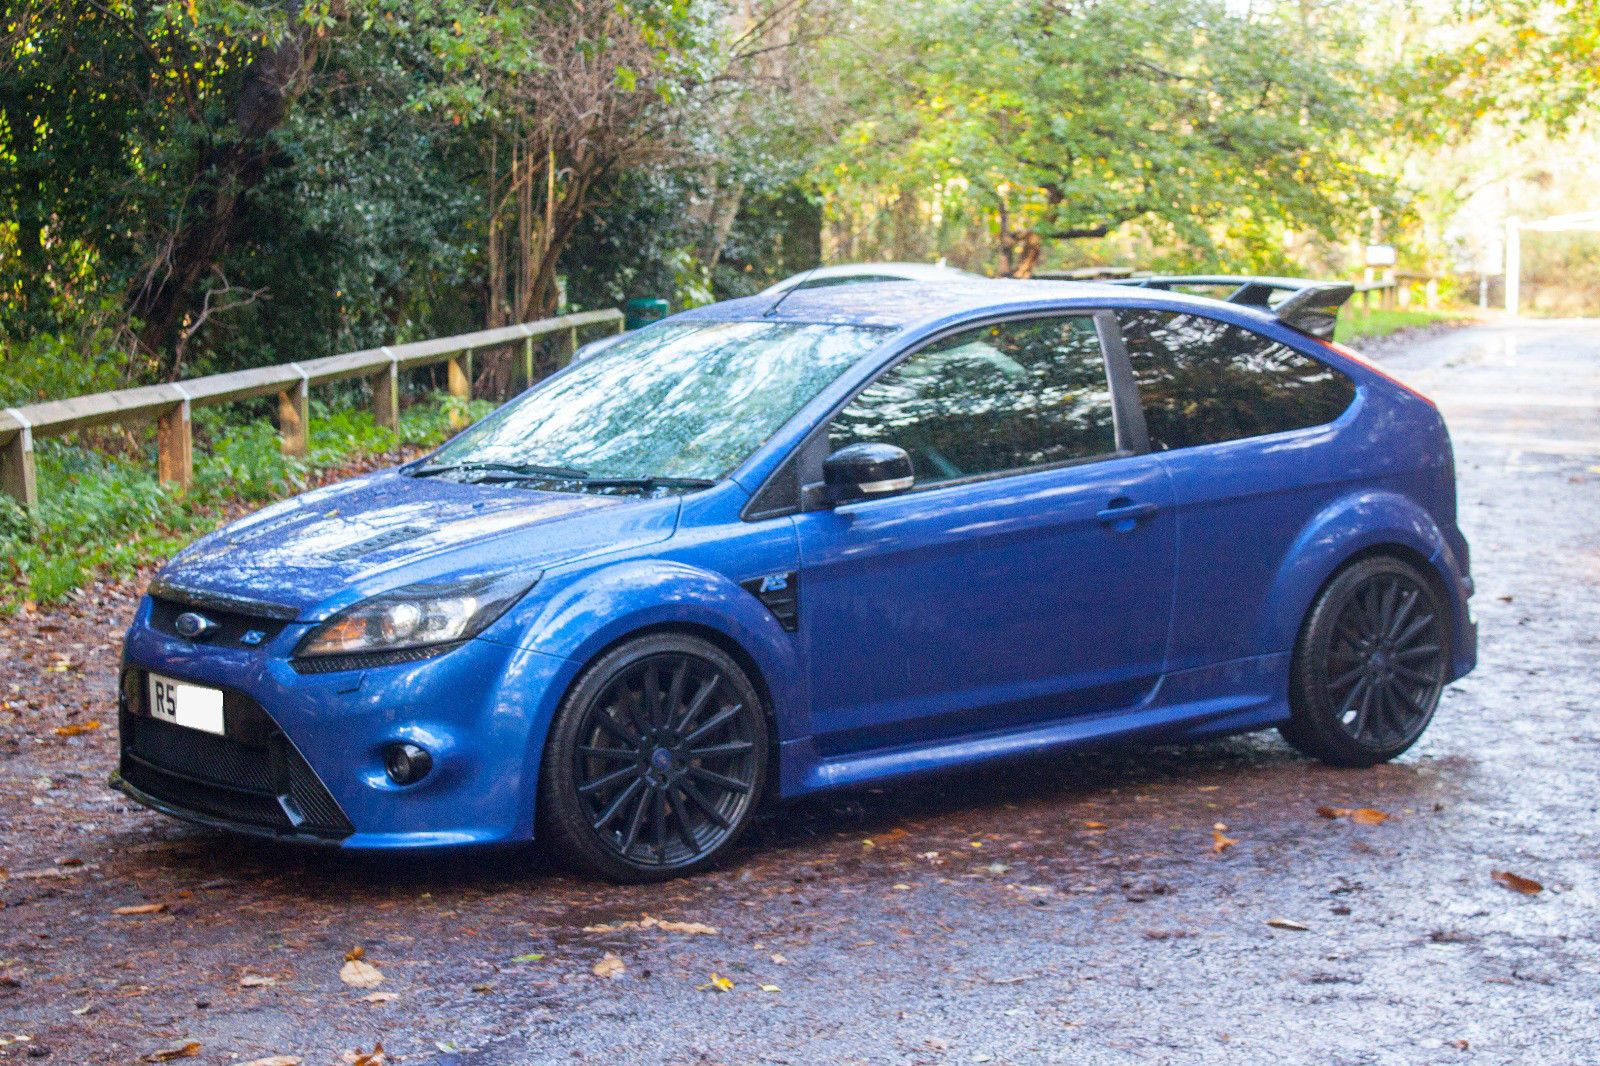 Check Out This Fast Ford Ford Focus St Rs Replica Ford Focus St Ford Focus Ford Focus Rs